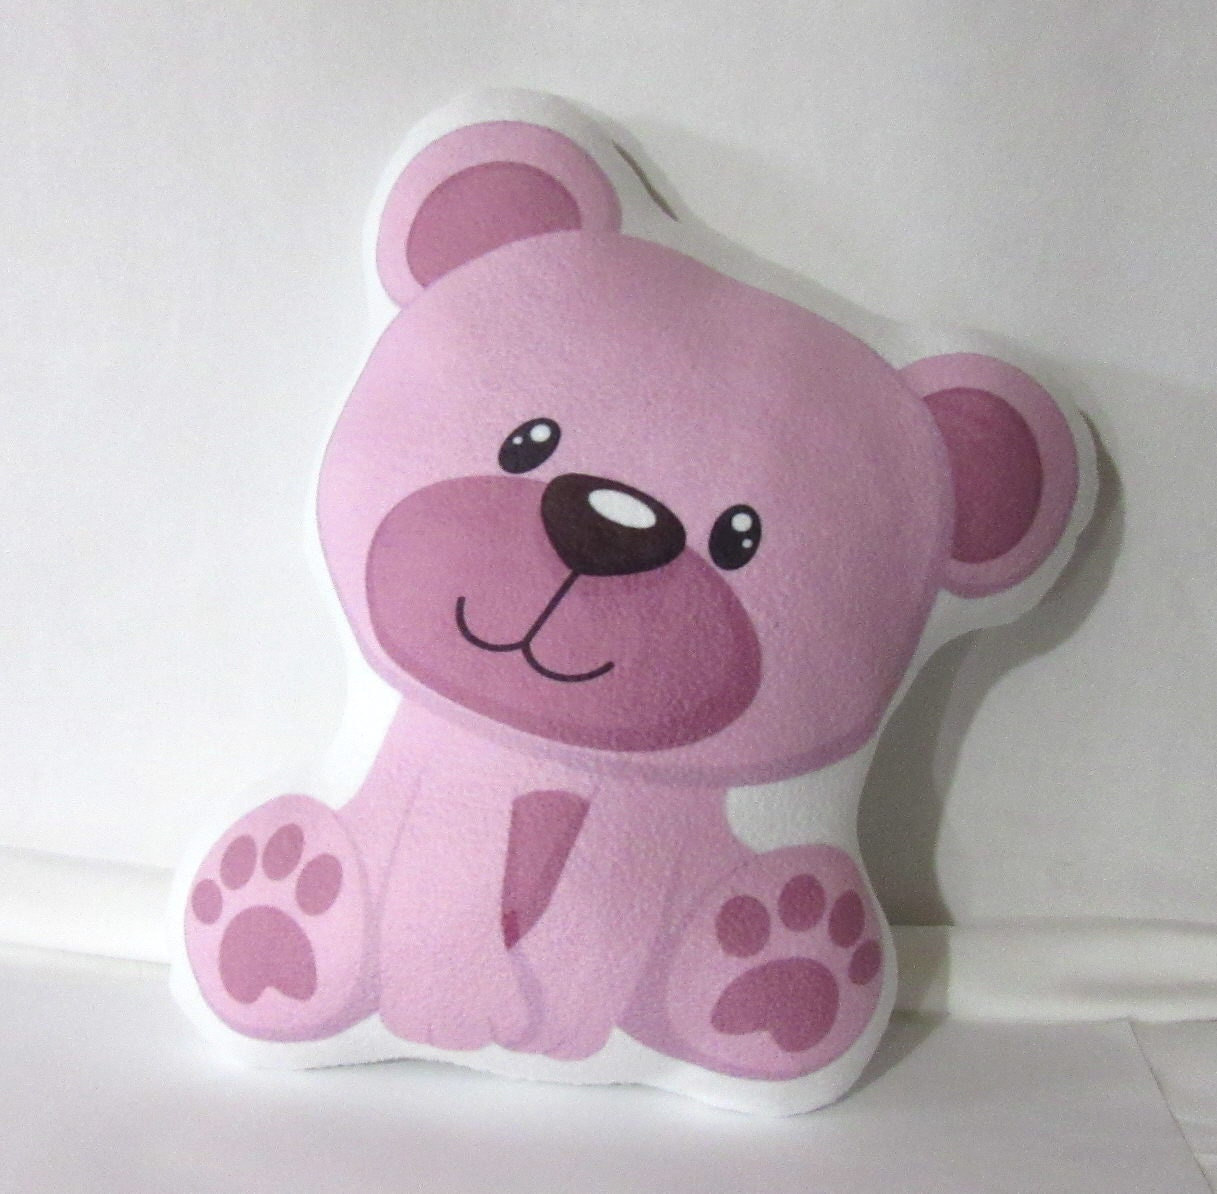 Unique Cute Baby Animal Pillow Sweet Pink Teddy Bear Dream